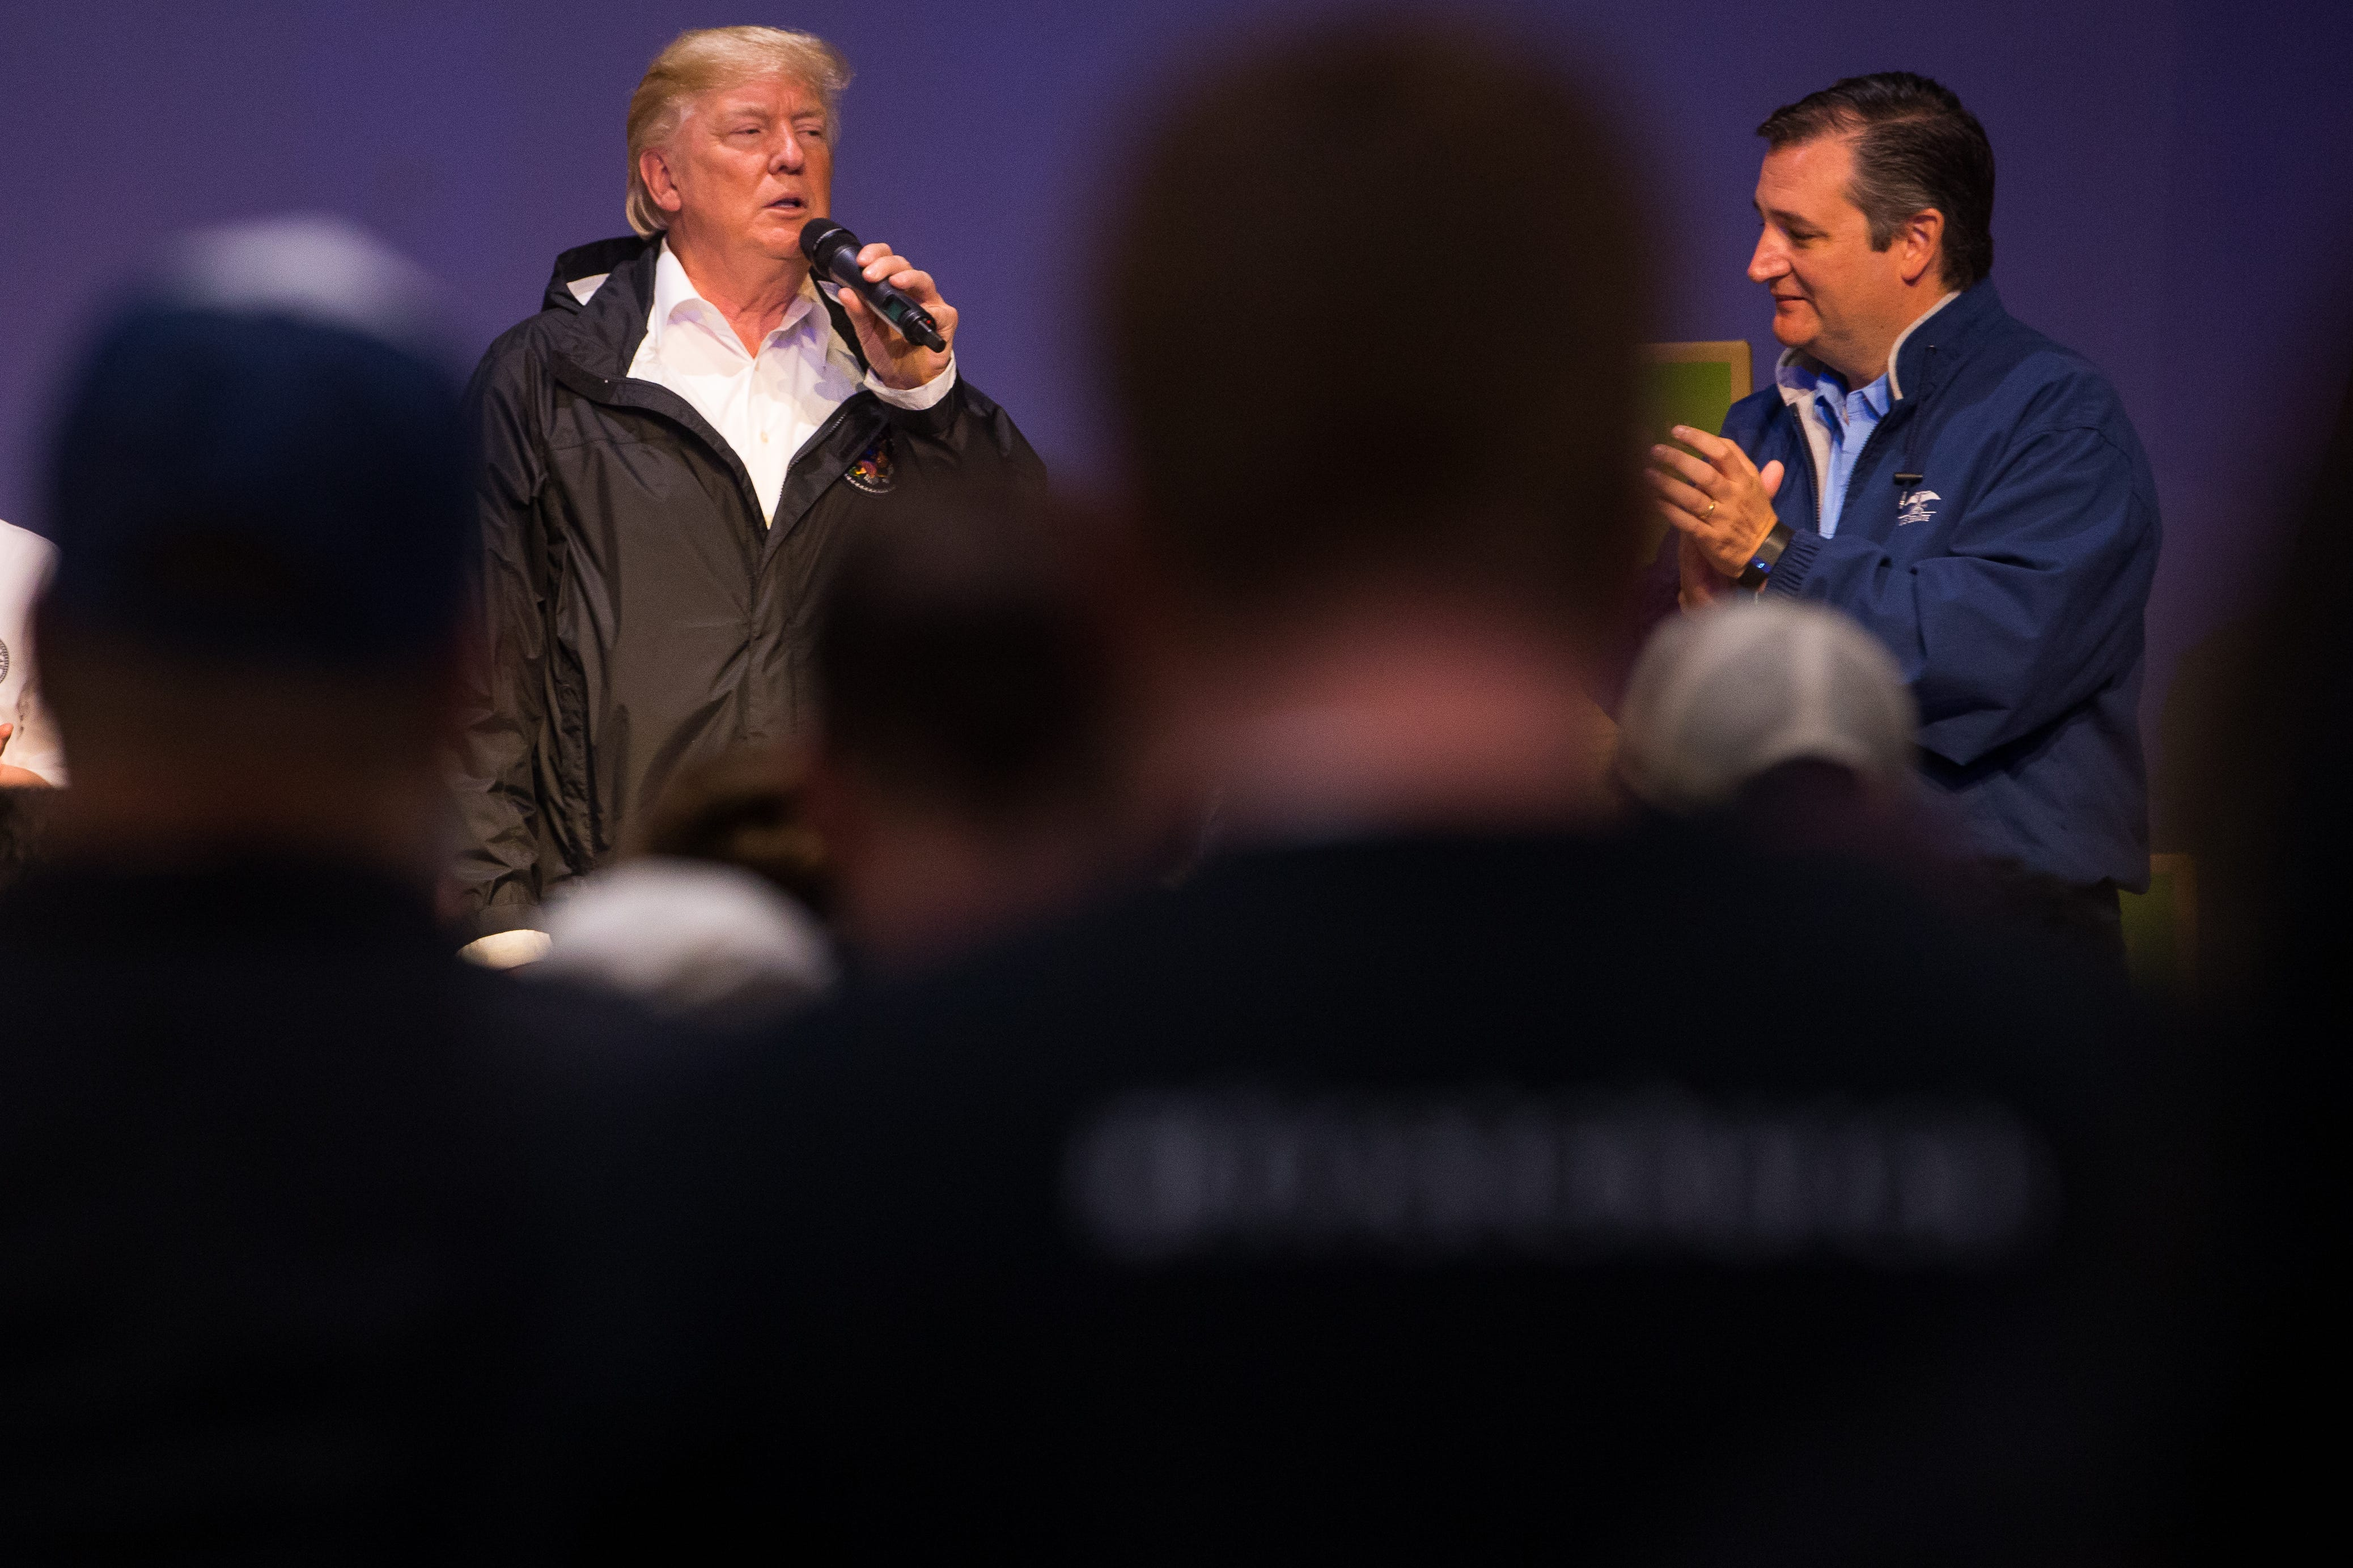 Ted Cruz lauds Donald Trump as 'flash-bang grenade,' two years after angry primary fight